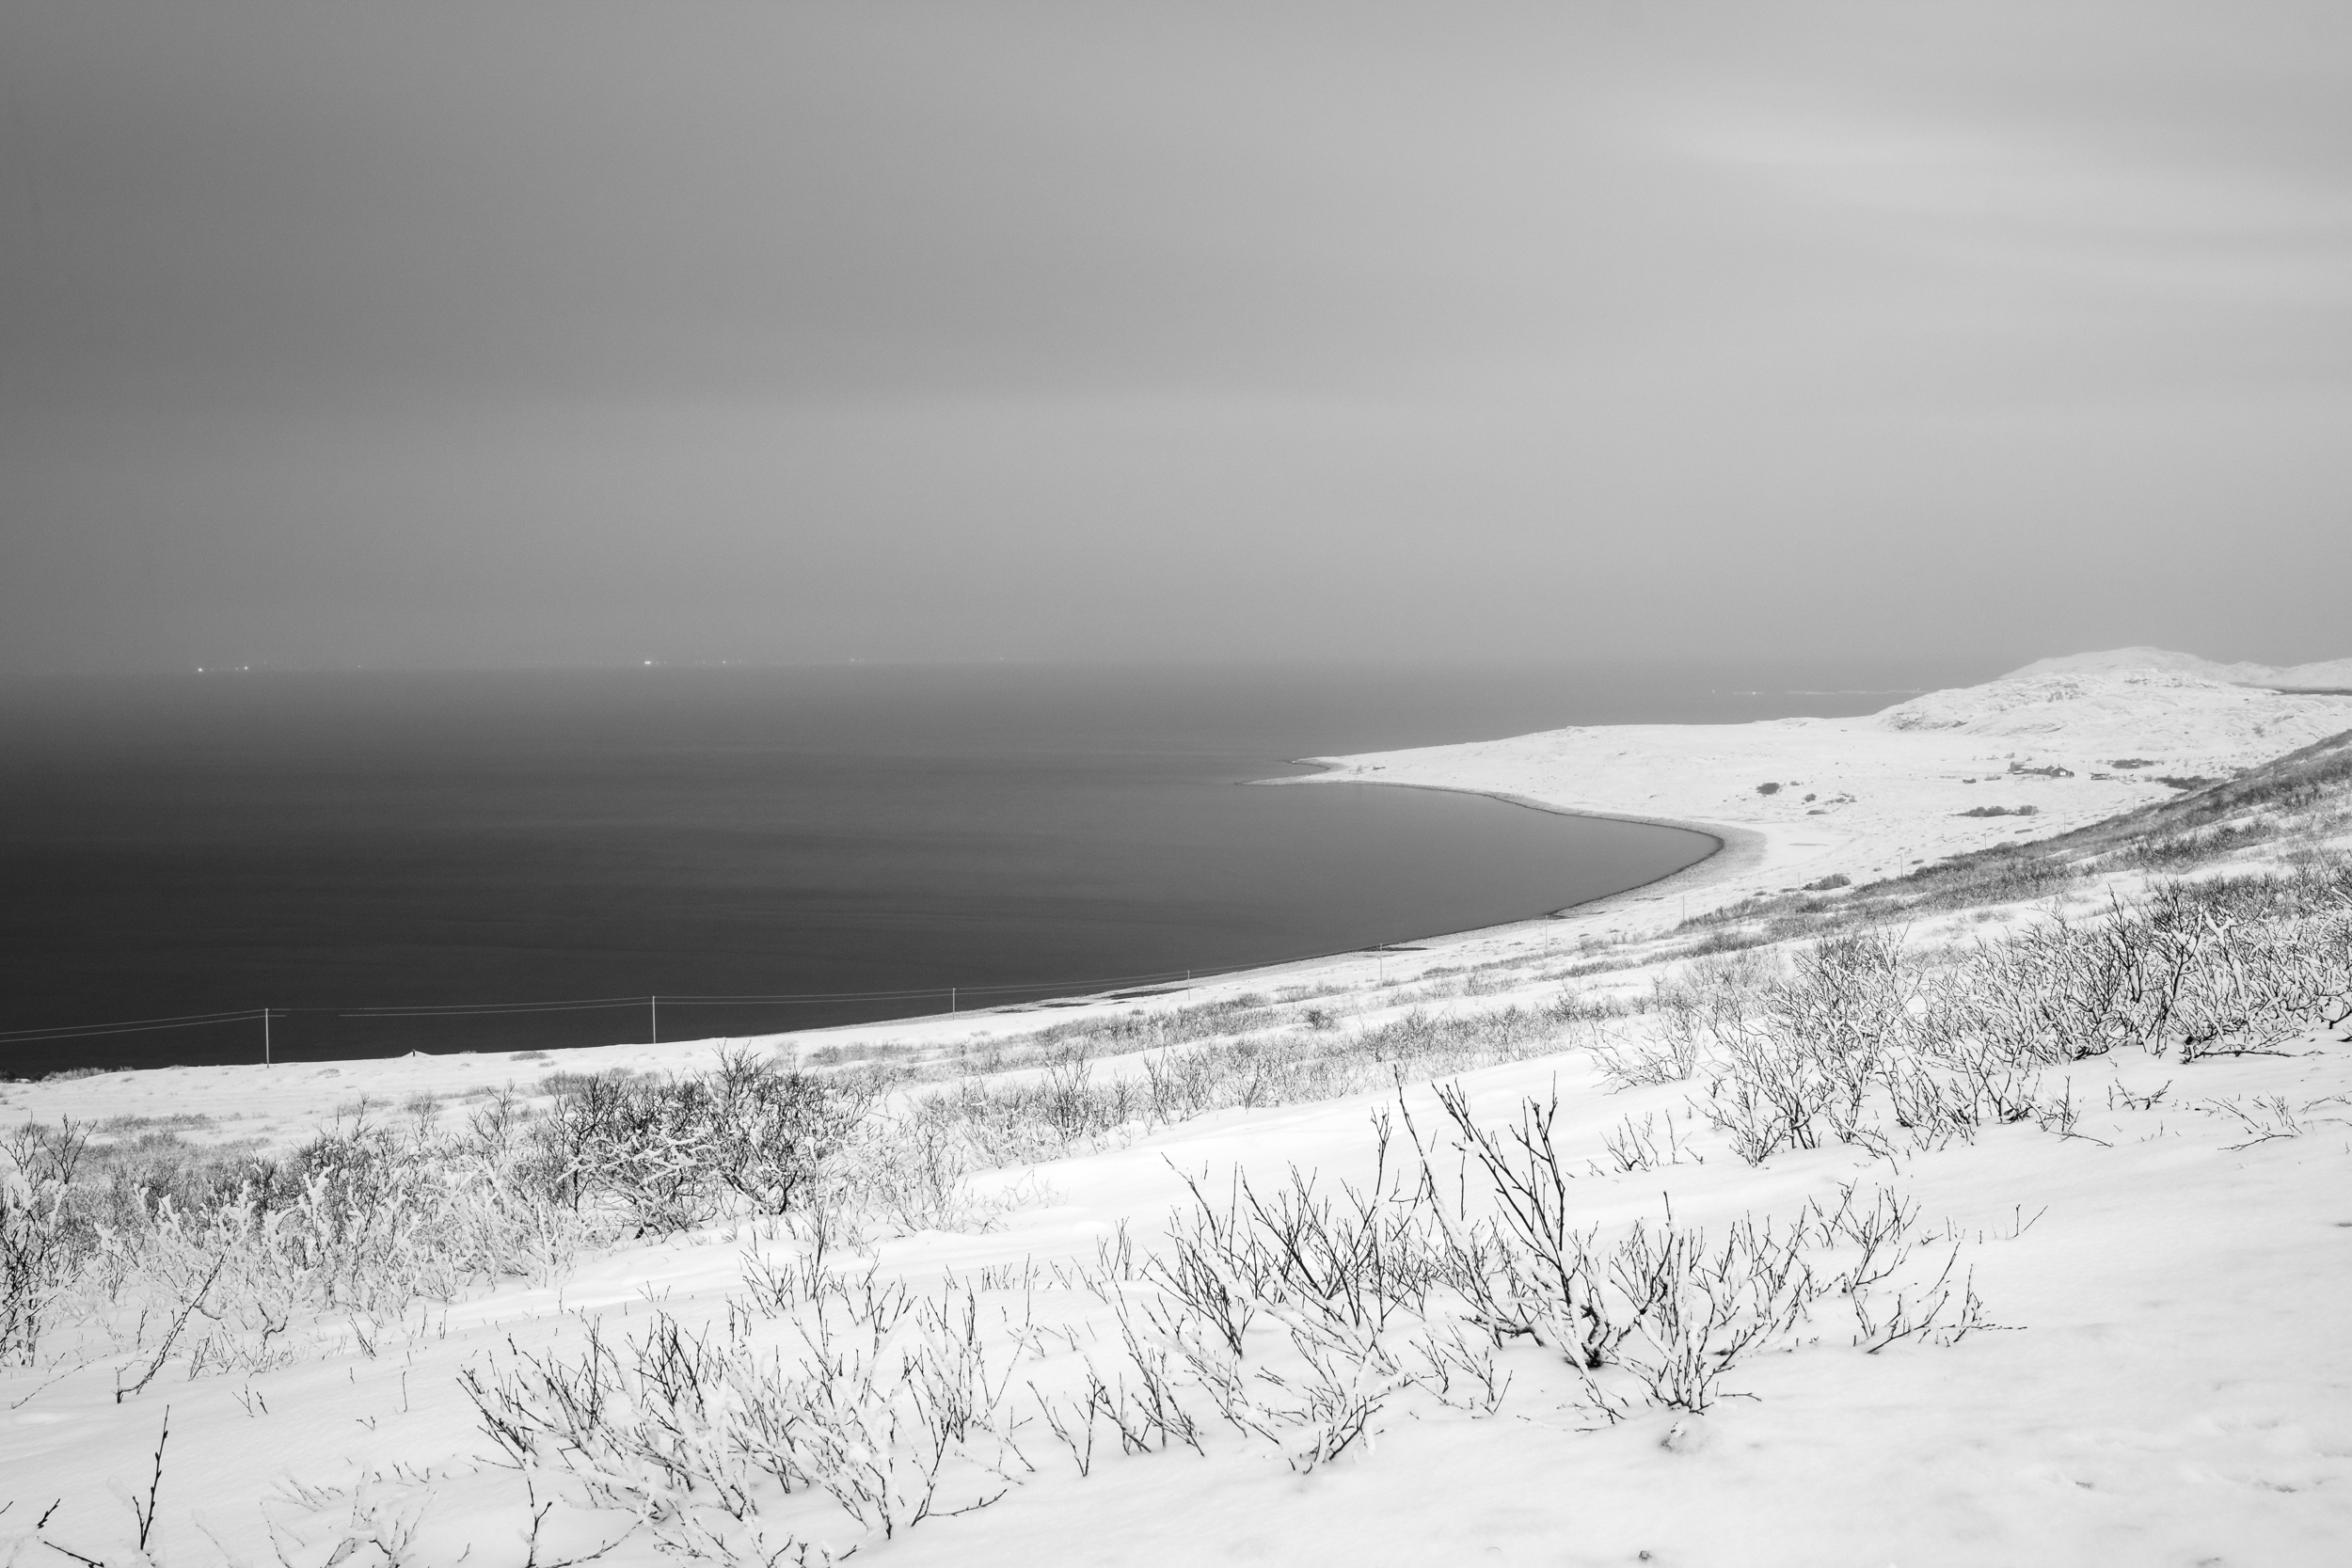 View from Brannsletta, a nature reserve / Fujifilim X-T3 ISO 160 23mm f/11 60sec